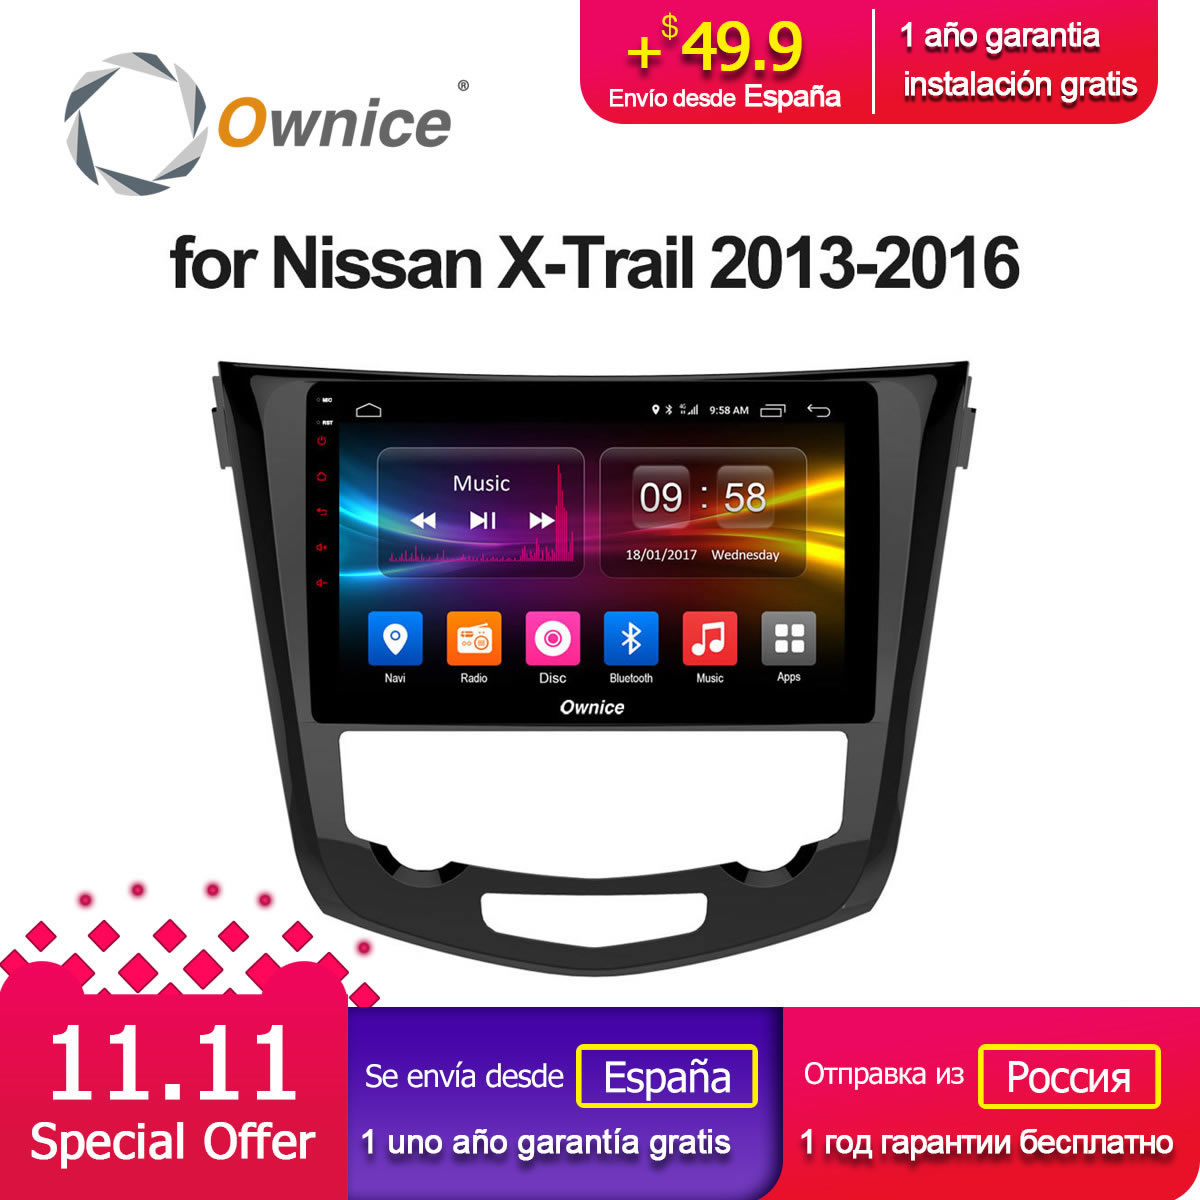 Ownice C500 + G10 10.1 ''Android 8.1 Octa Nucleo Per Nissan X-TRAIL 2013 2014 2015 2016 Auto Radio GPS navi DVD Player 2g/32g 4g LTE